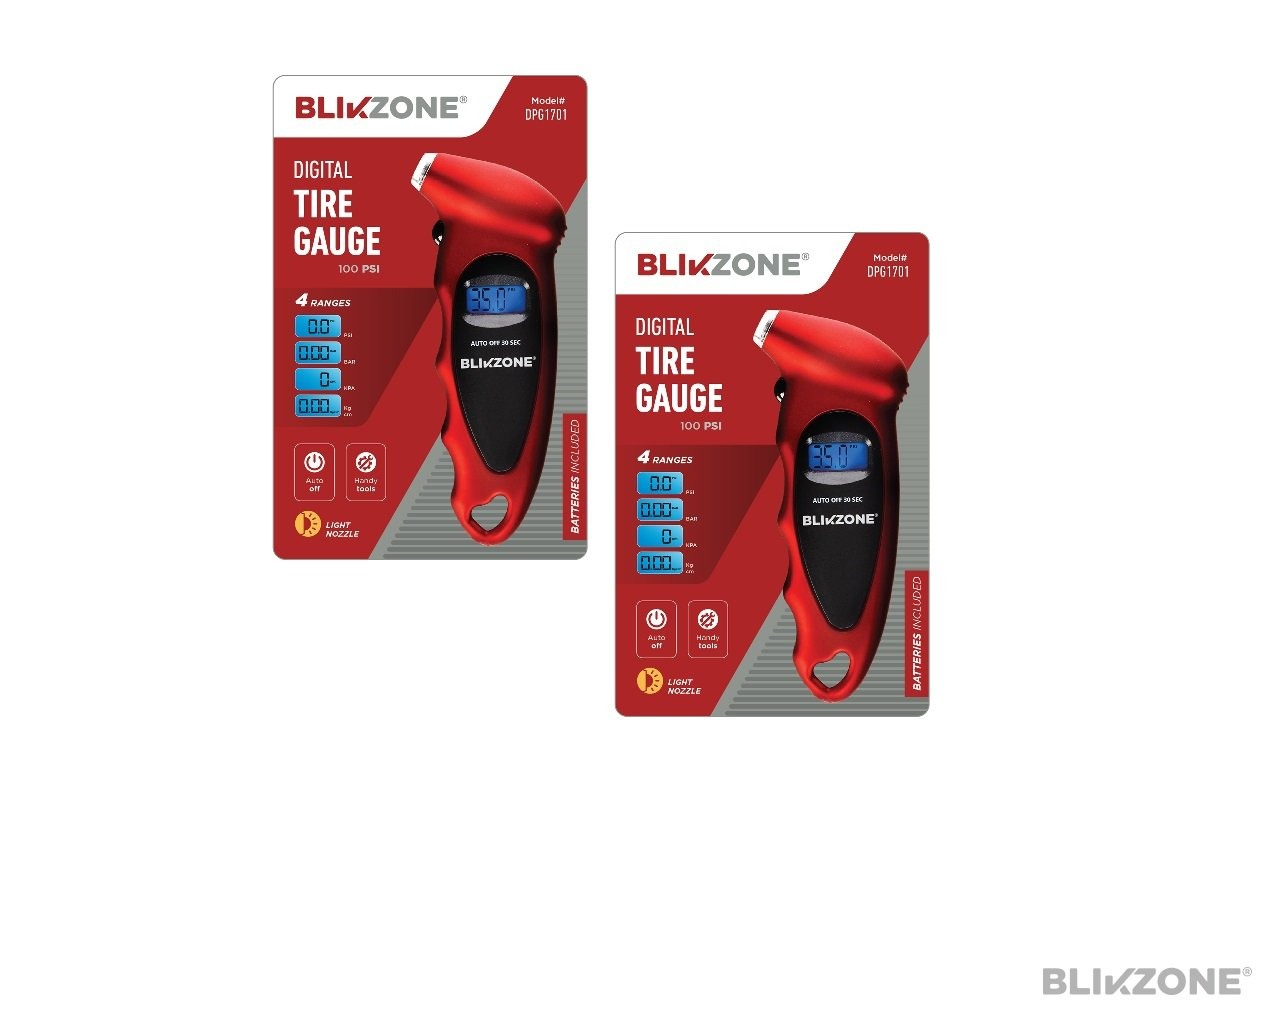 Blikzone Digital Tire Pressure Gauge 100 PSI for Car, Bicycle, Truck & RV Backlit LCD Screen 4 Ranges Auto-shutoff Easy-Grip, Handy Tool (2 Pack Red)